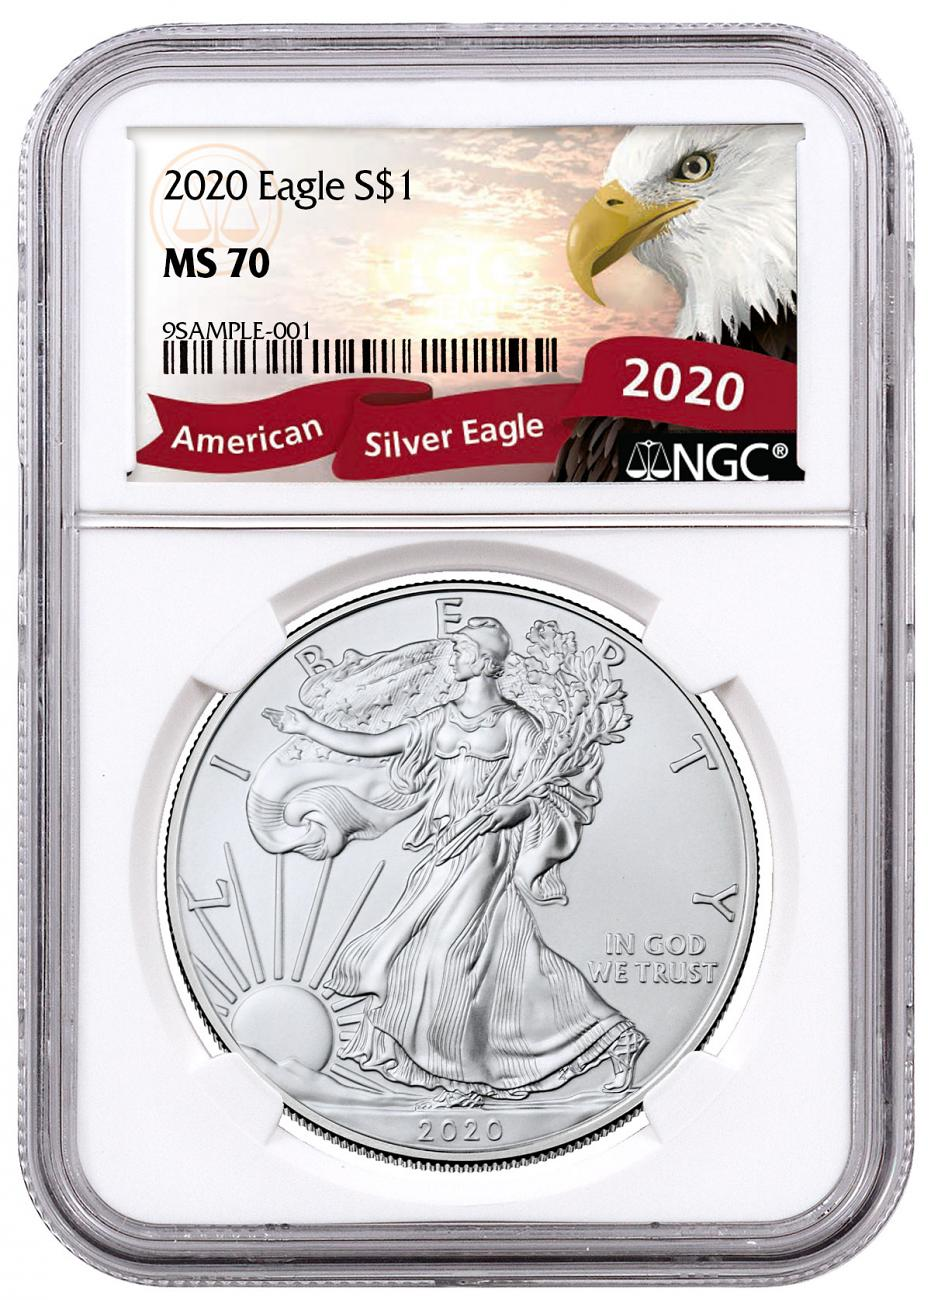 2020 1 oz American Silver Eagle $1 Coin NGC MS70 Exclusive Eagle Label